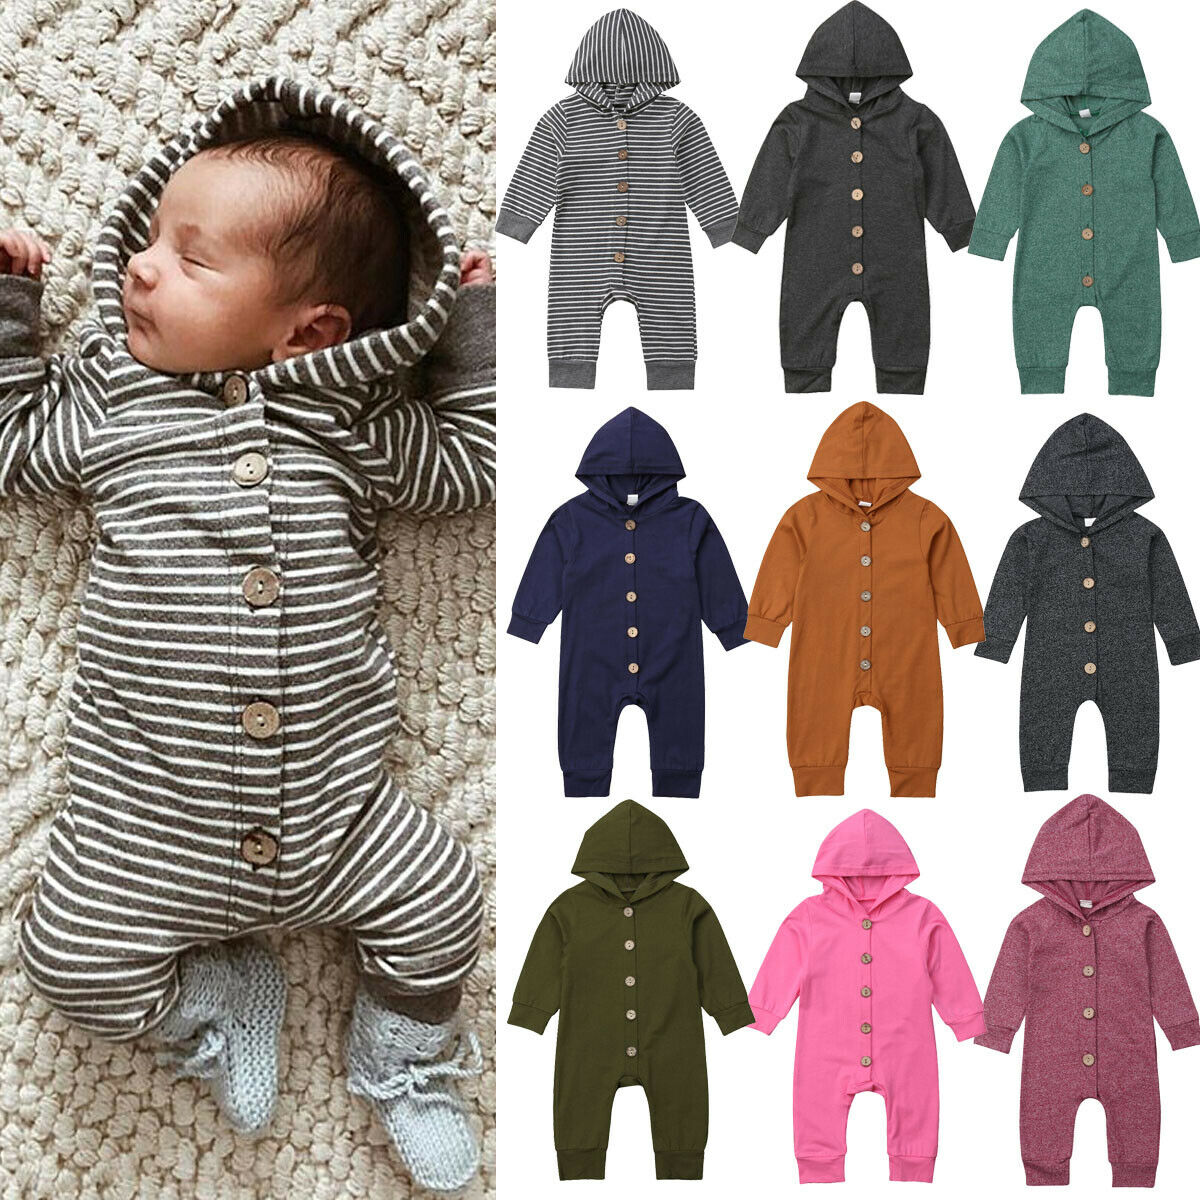 Spring Autumn Newborn Jumpsuit Infant Clothes Kids Baby Boys Girls Long Sleeve Hooded Solid Rompers Outfits 0-24M